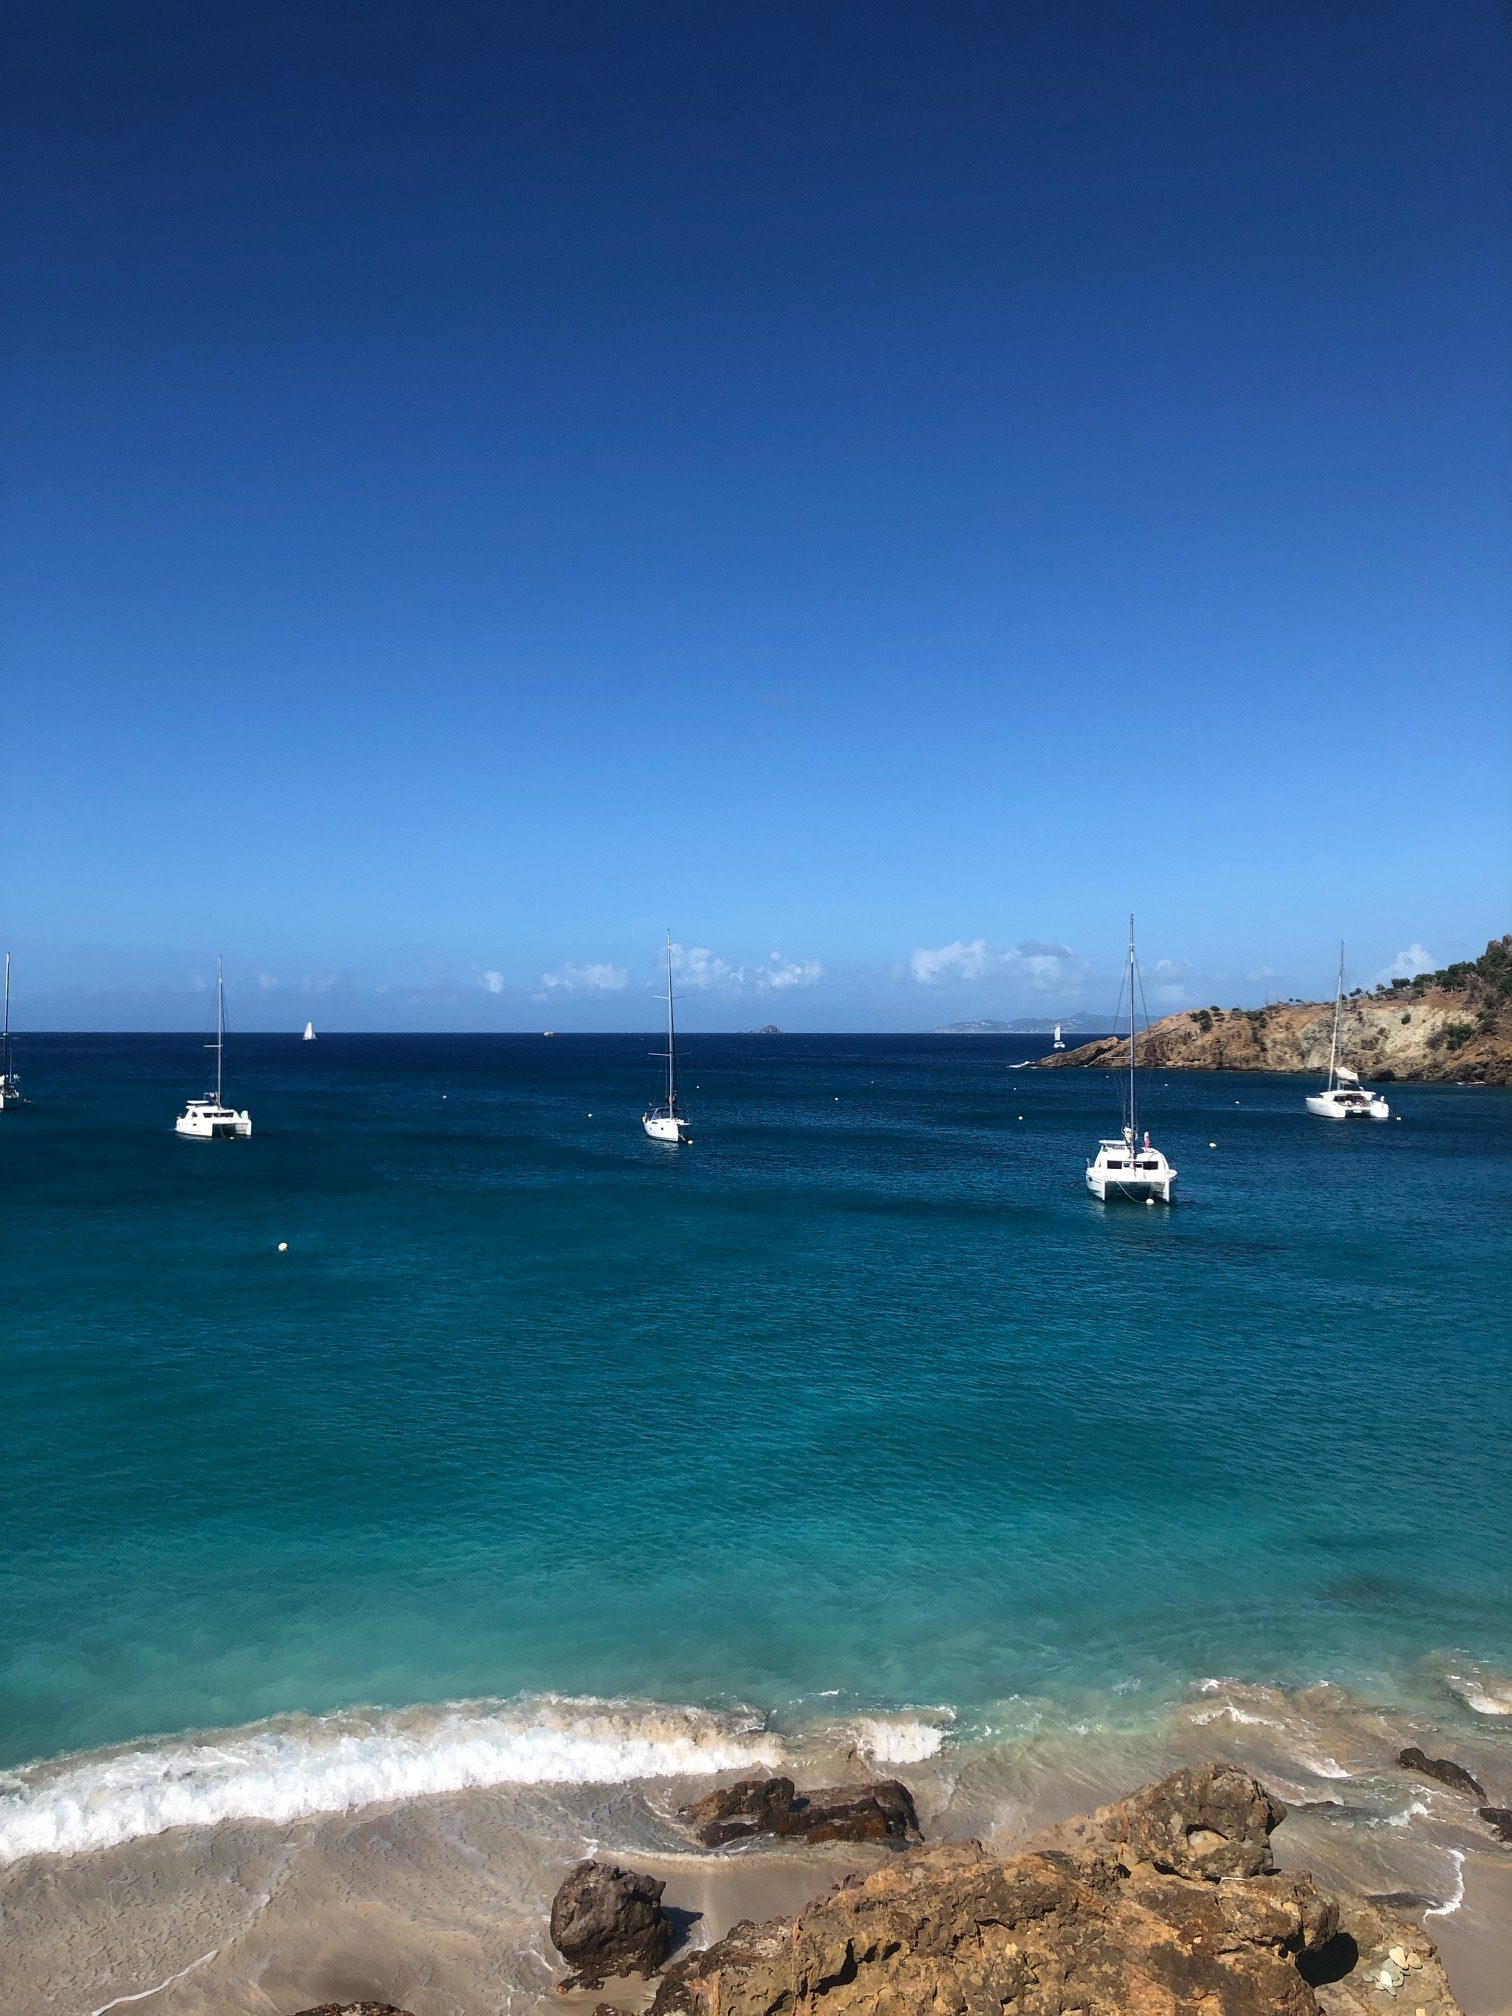 St. Barth's travel guide